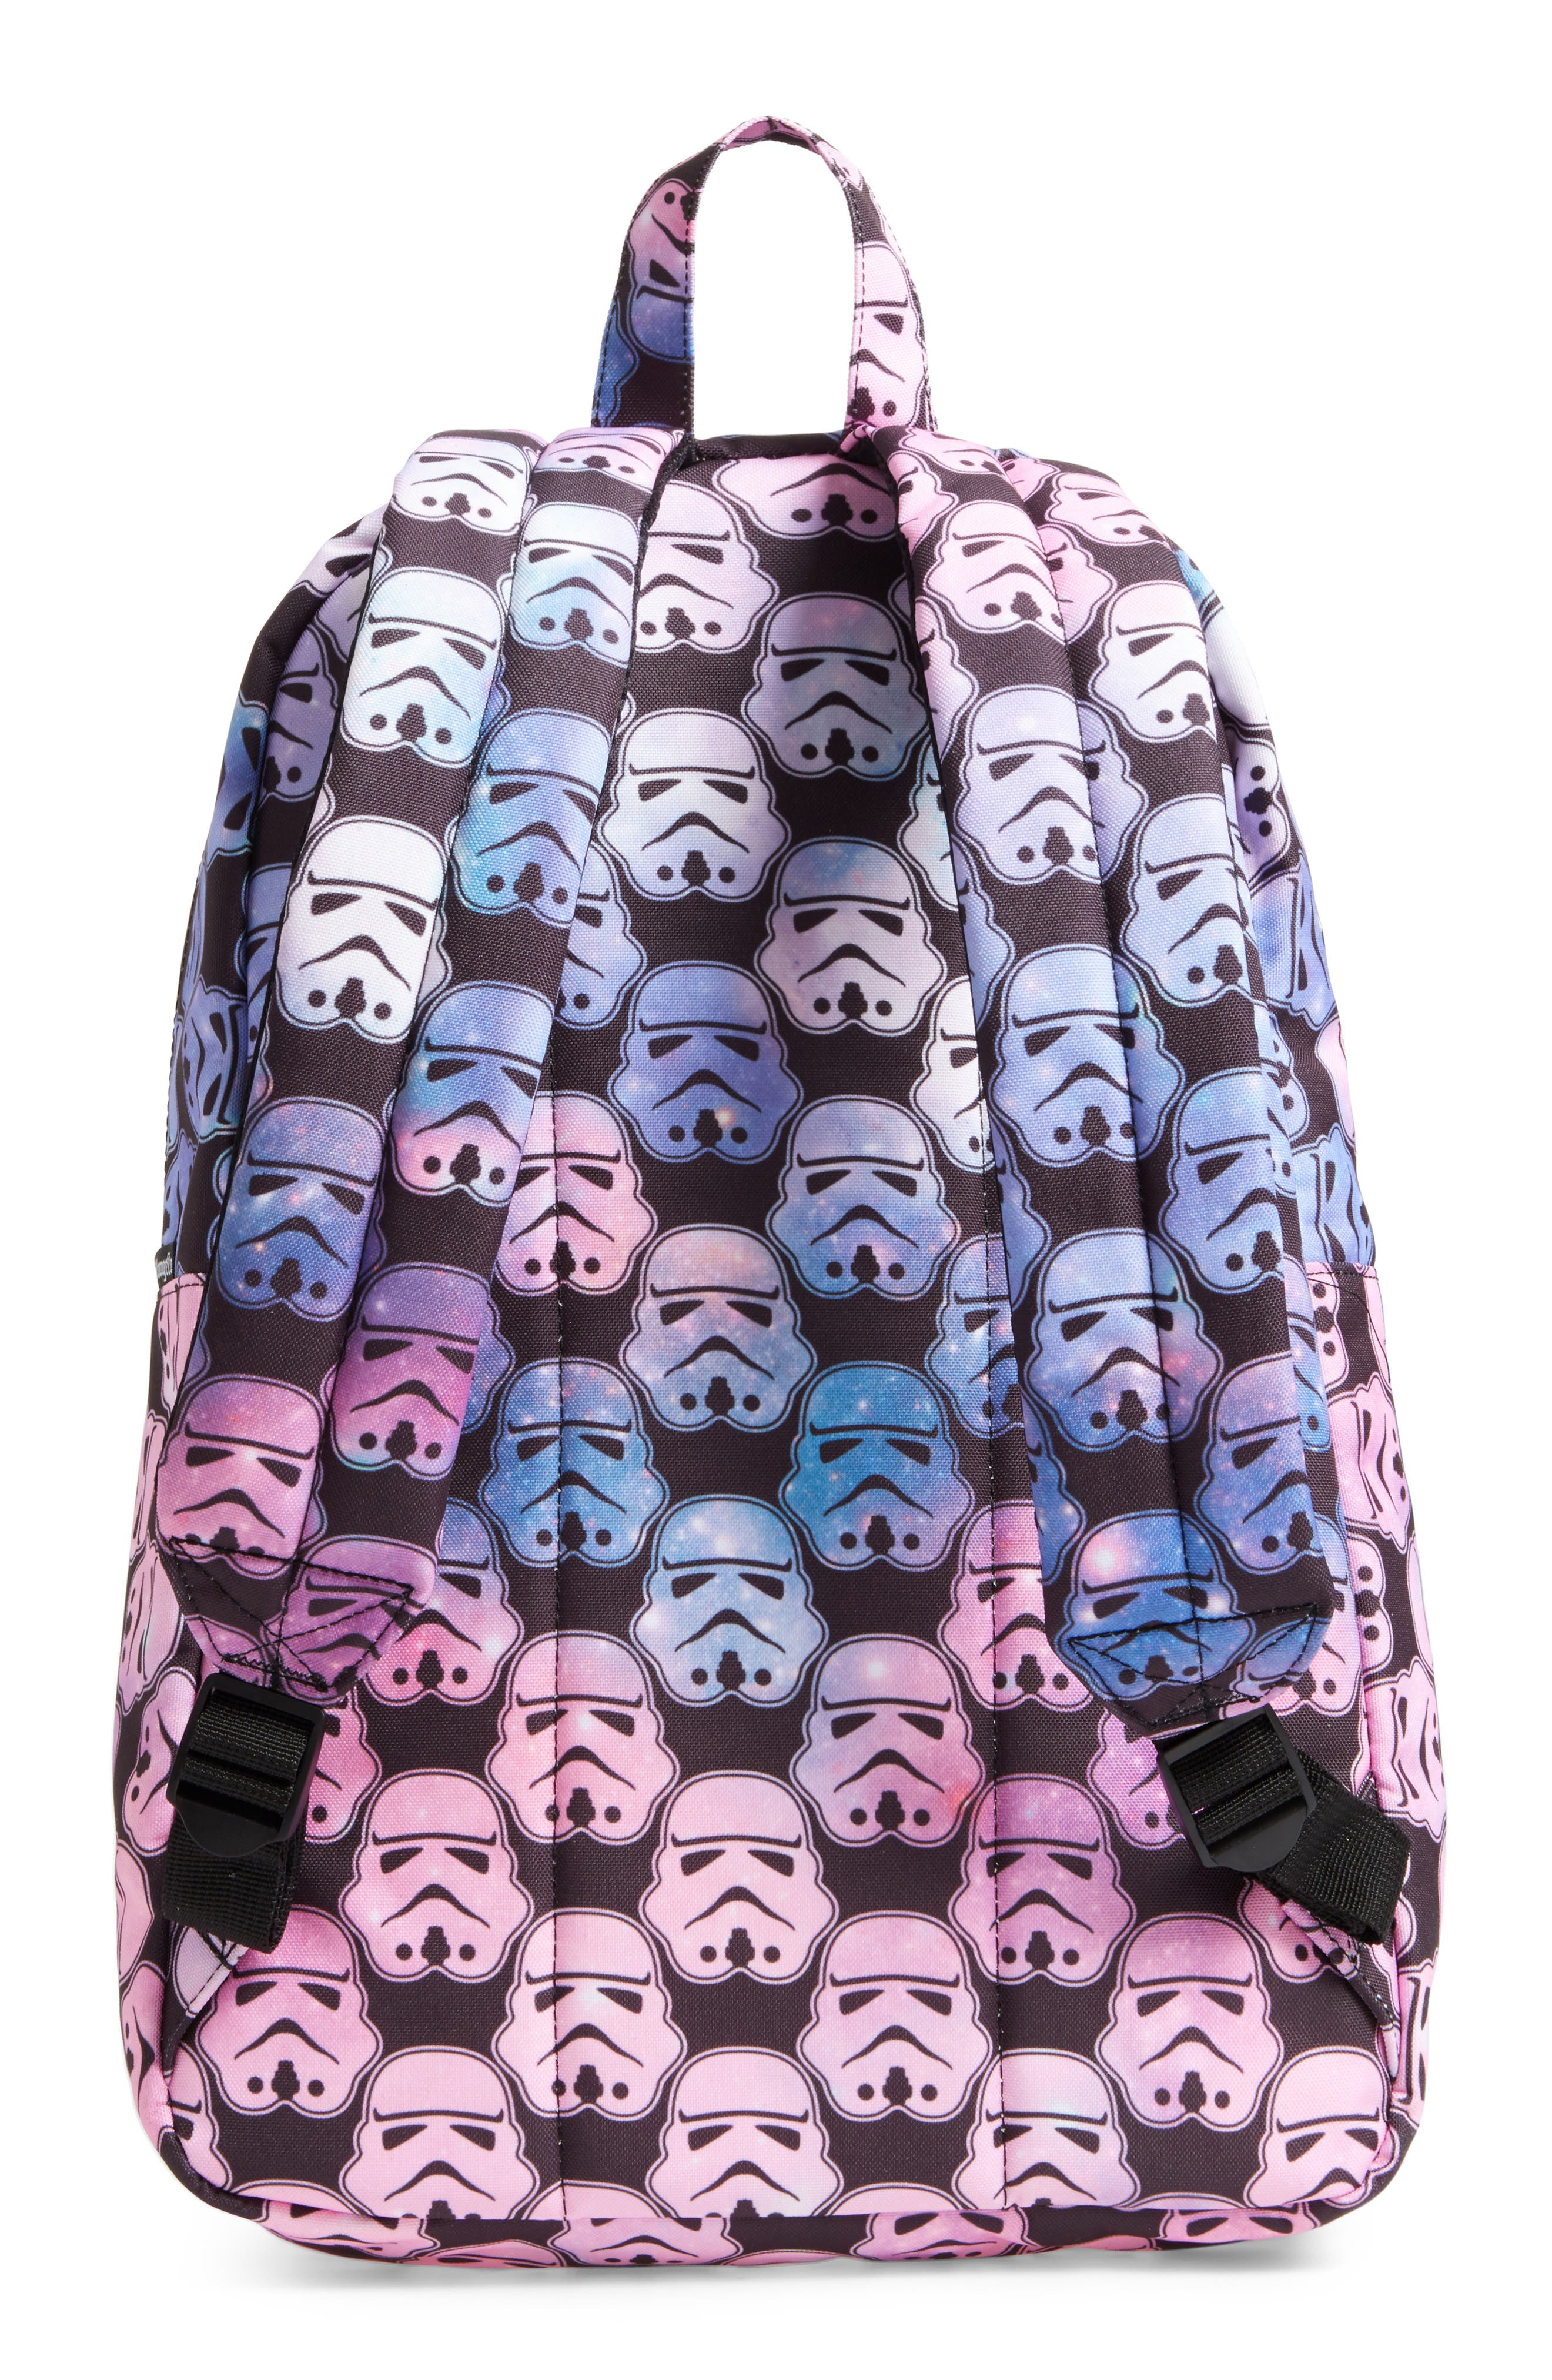 Star Wars<sup>™</sup> Stormtrooper Galaxy Backpack,                             Alternate thumbnail 2, color,                             001